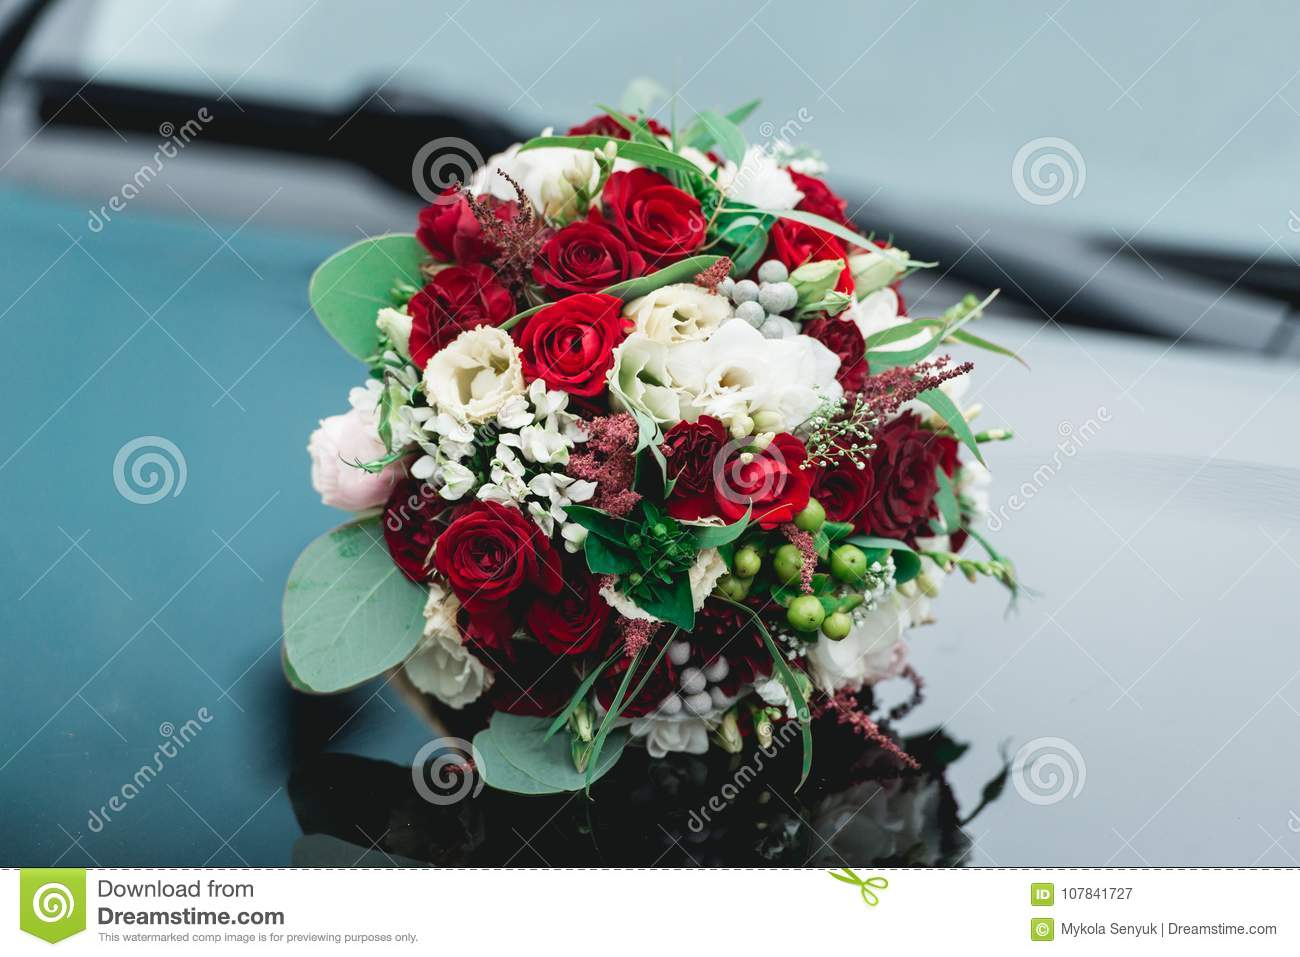 Wedding Bouquet Of White And Red Roses On A Car Hood Stock Image